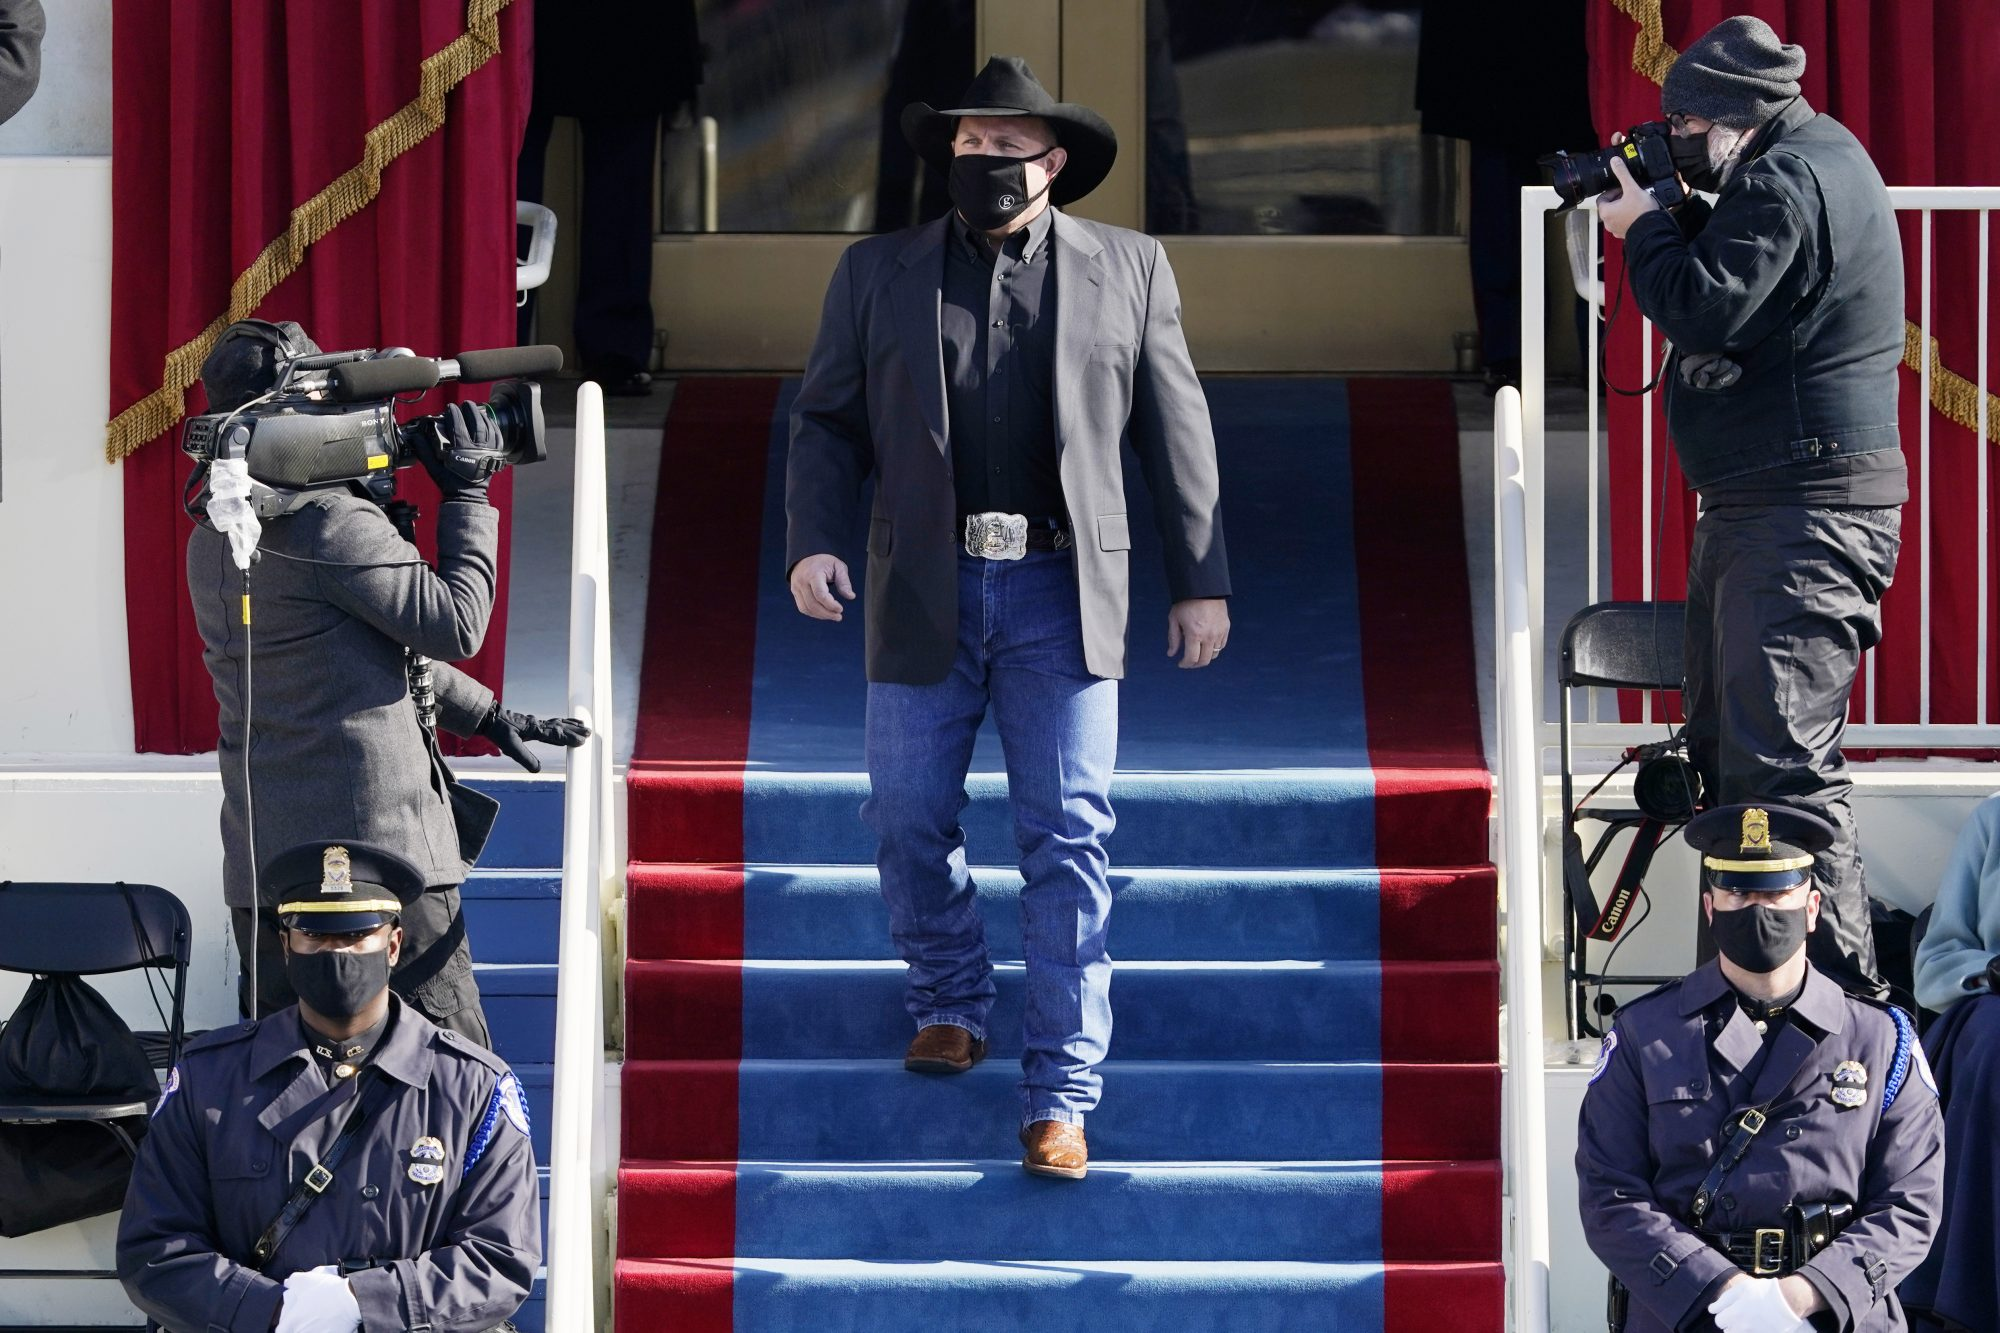 Garth Brooks arrives to sing Amazing Grace during the the 59th inaugural ceremony on the West Front of the U.S. Capitol on January 20, 2021 in Washington, DC.